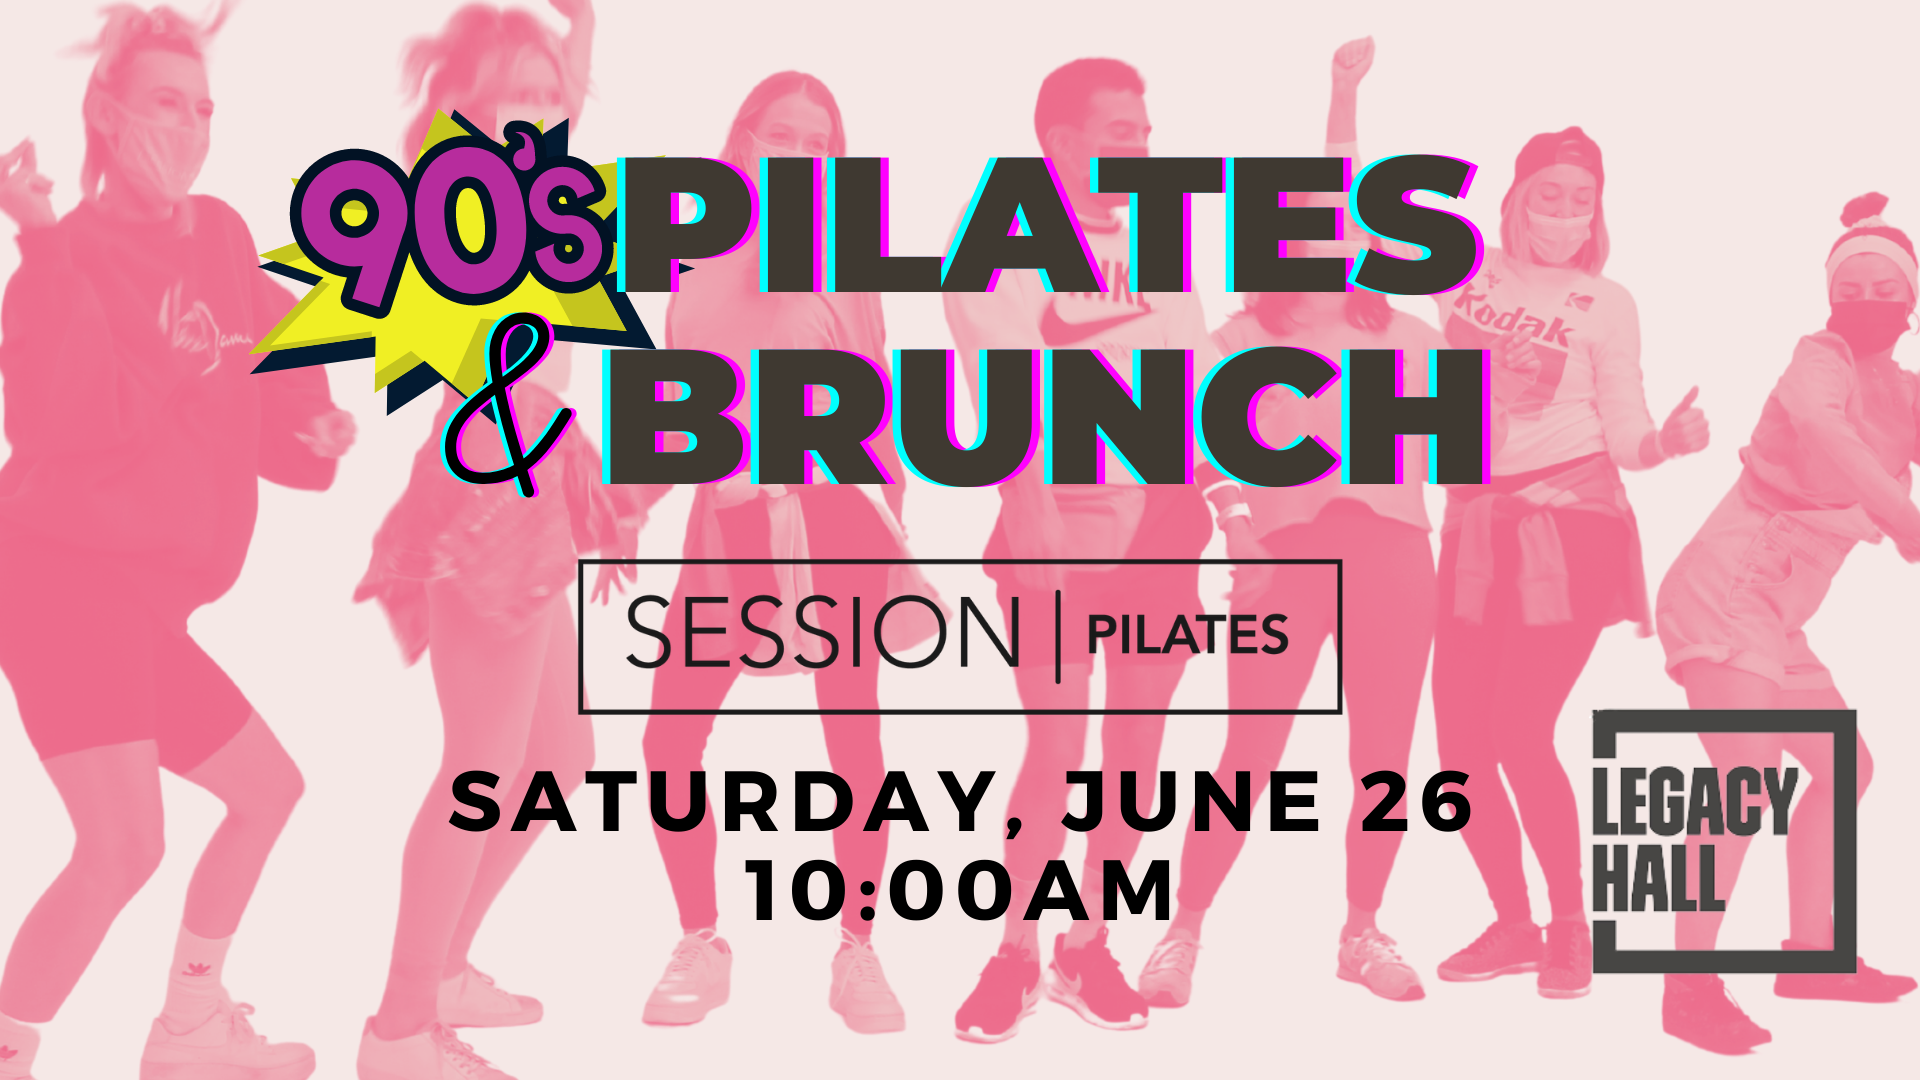 Promo image of SESSION Pilates Class & Brunch